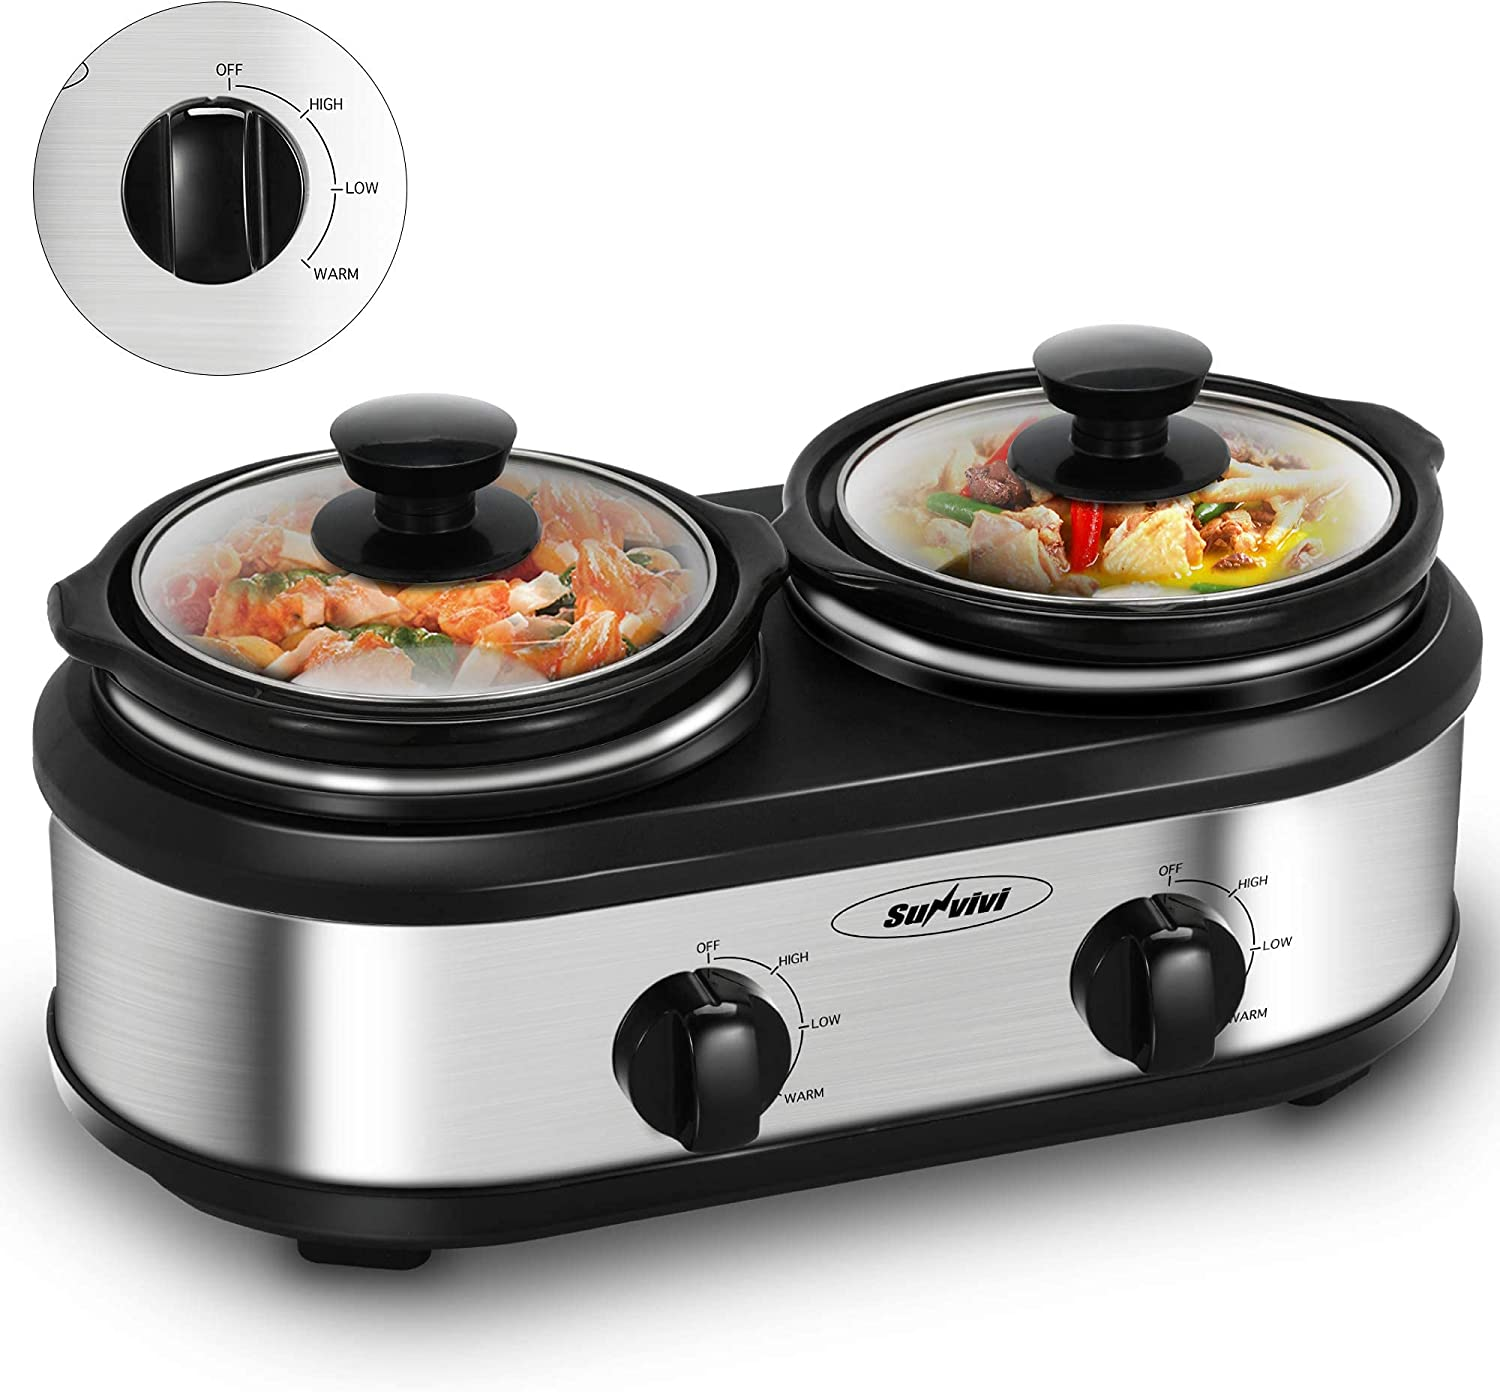 Dual 2 Pot Slow Cooker Buffet Server Electric Slow Cooker Food Warmer, Adjustable Temp Dishwasher Safe Removable Ceramic Pot Glass Lid, 2x1.25QT Portable Small Crock Cooker Stainless Steel Slow Cooker